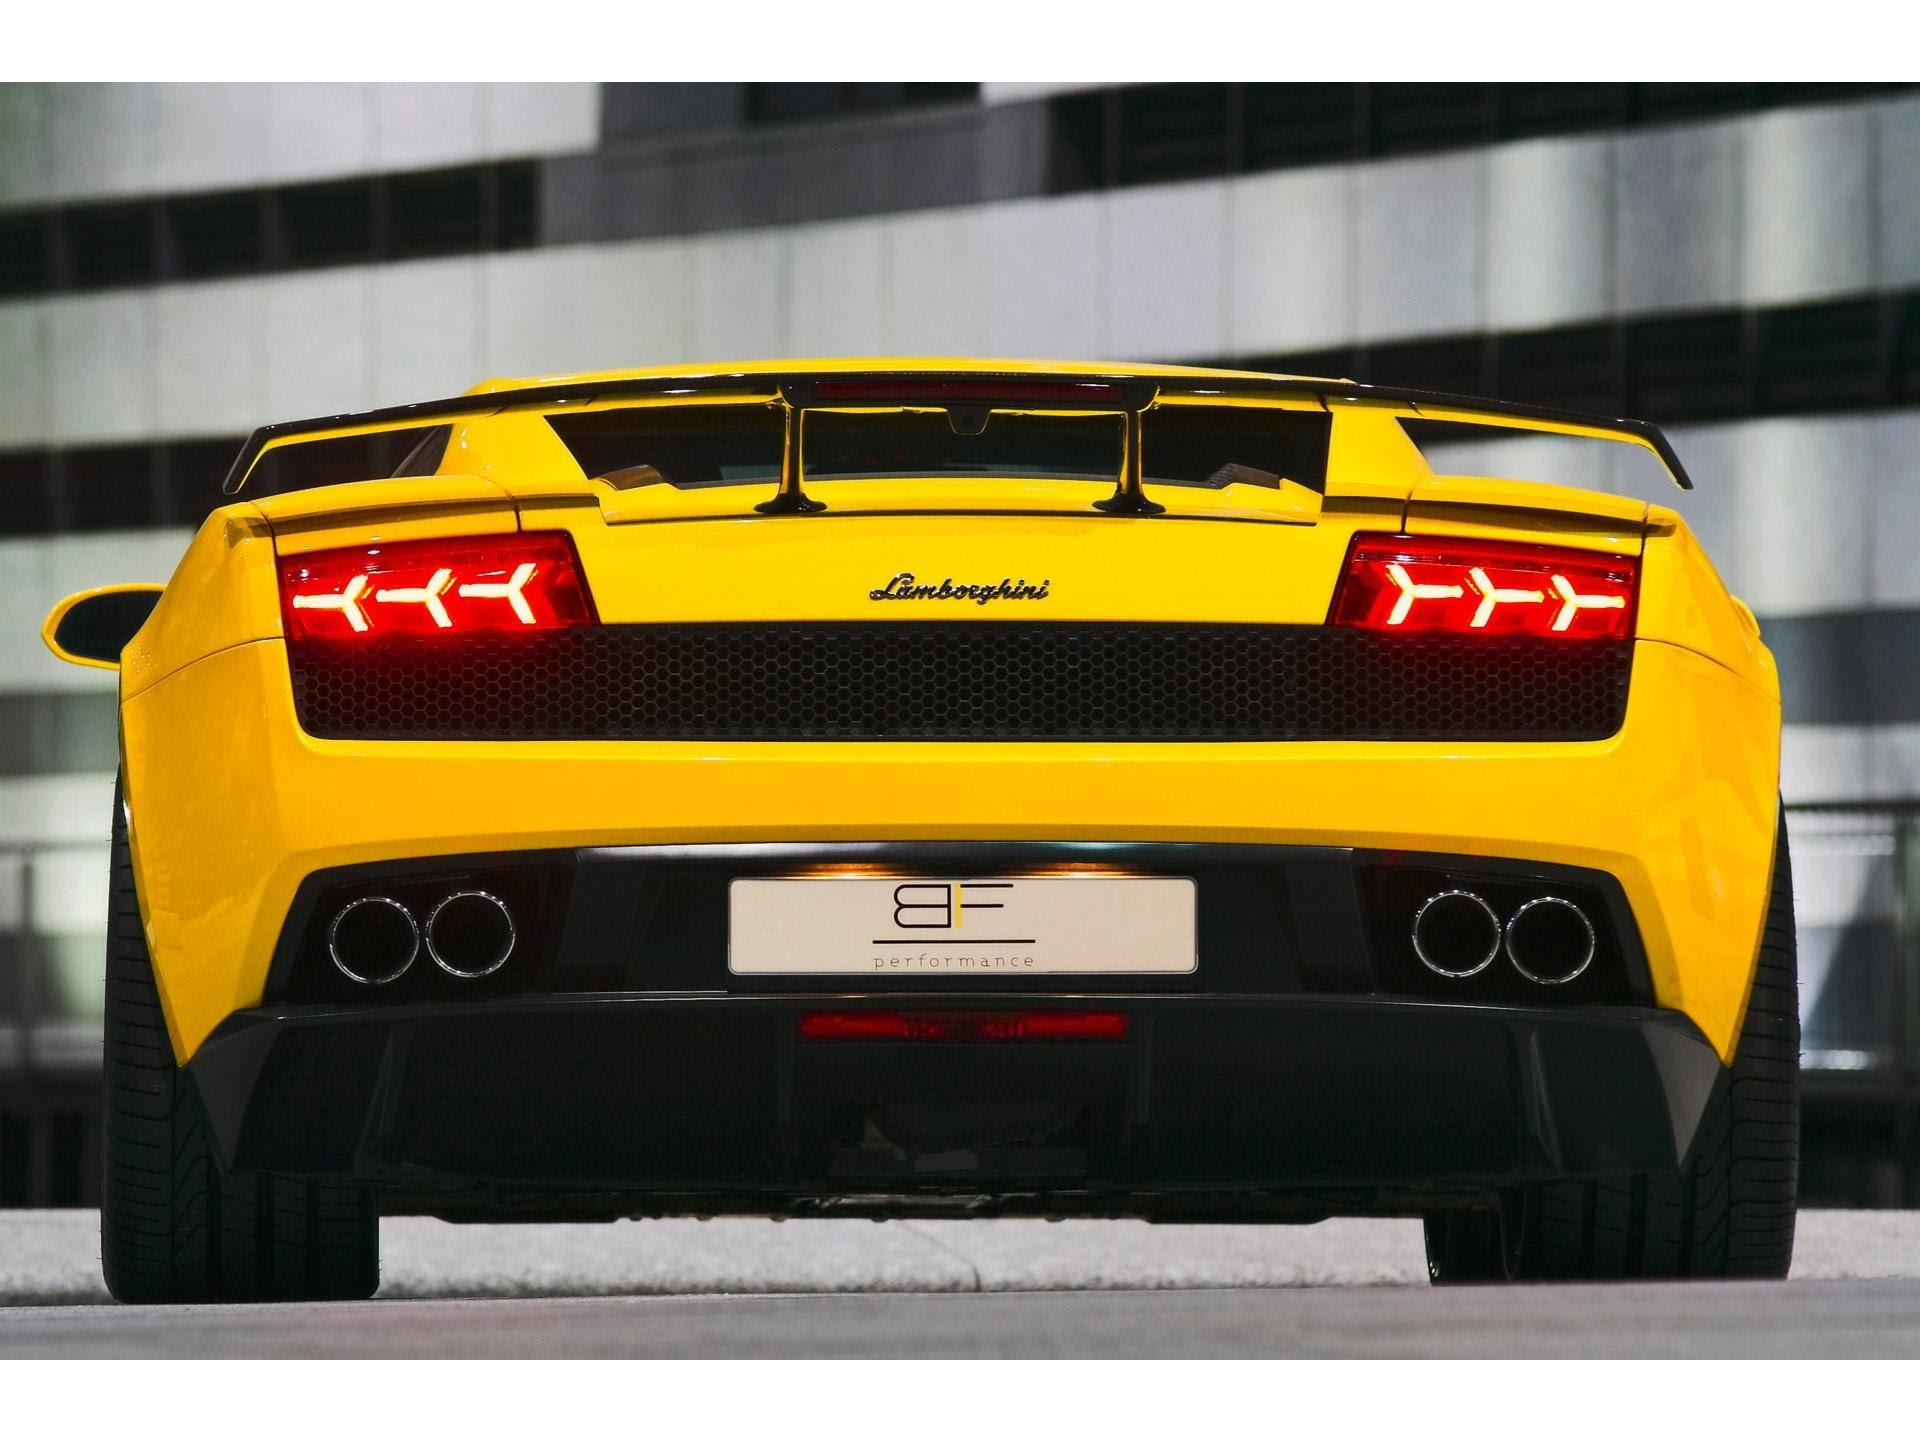 1920x1440 2003 Lamborghini Gallardo - Popular Super Cars- Wallpaper and High  Resolution Photos - YouTube